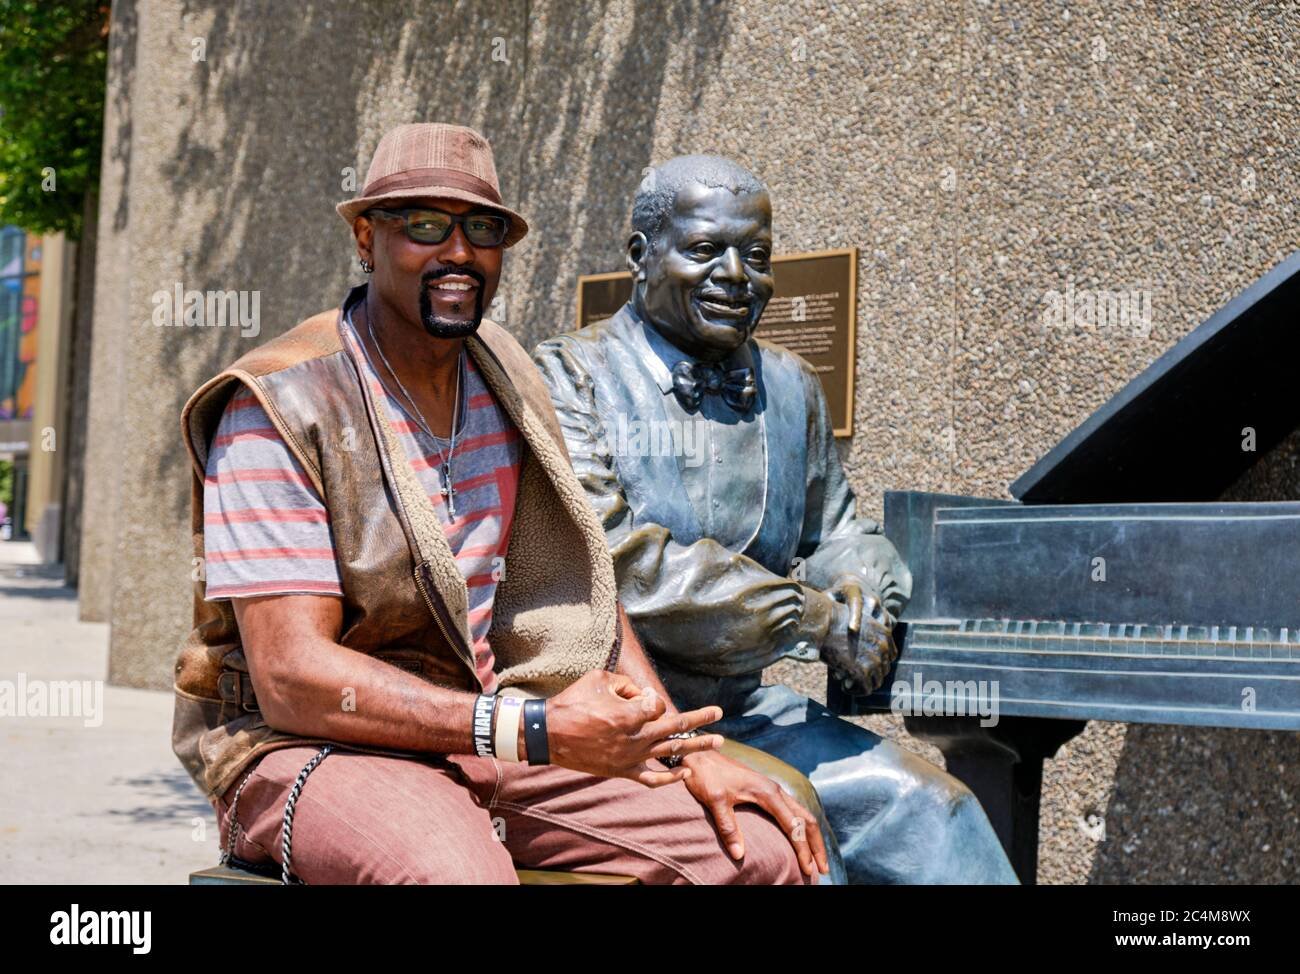 ottawa-canada-american-visitor-to-the-city-posing-sitting-next-to-the-oscar-peterson-statue-in-city-core-2C4M8WX.jpg